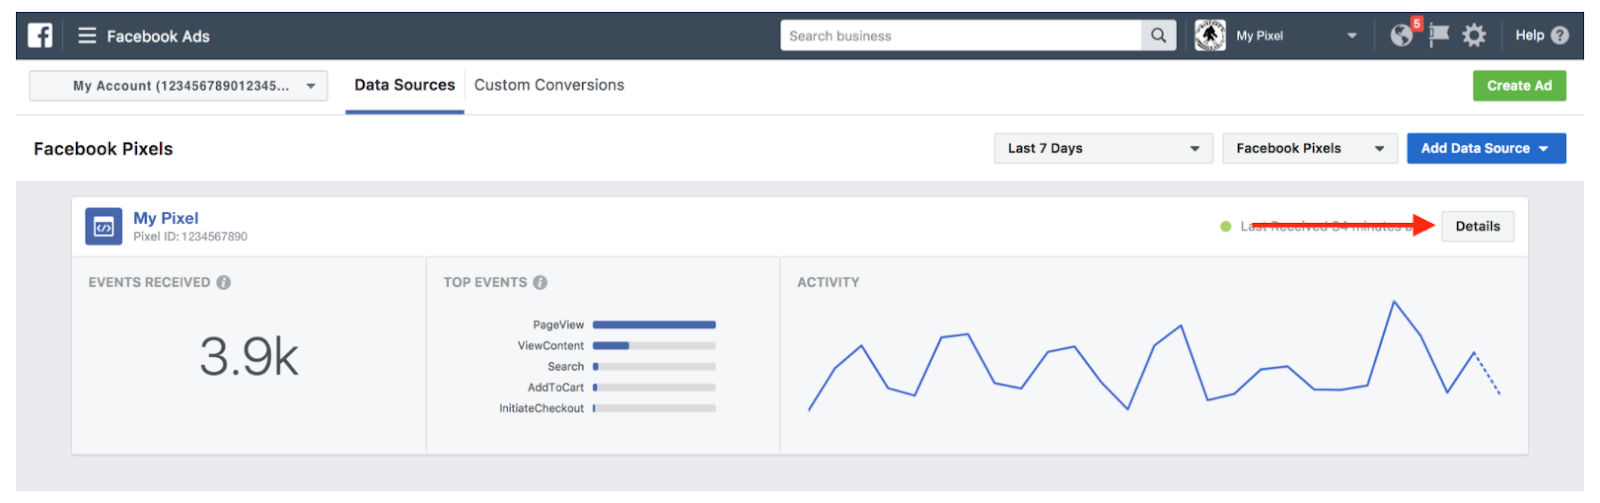 How to Use Events to Optimize Your Facebook And Google Ads 6